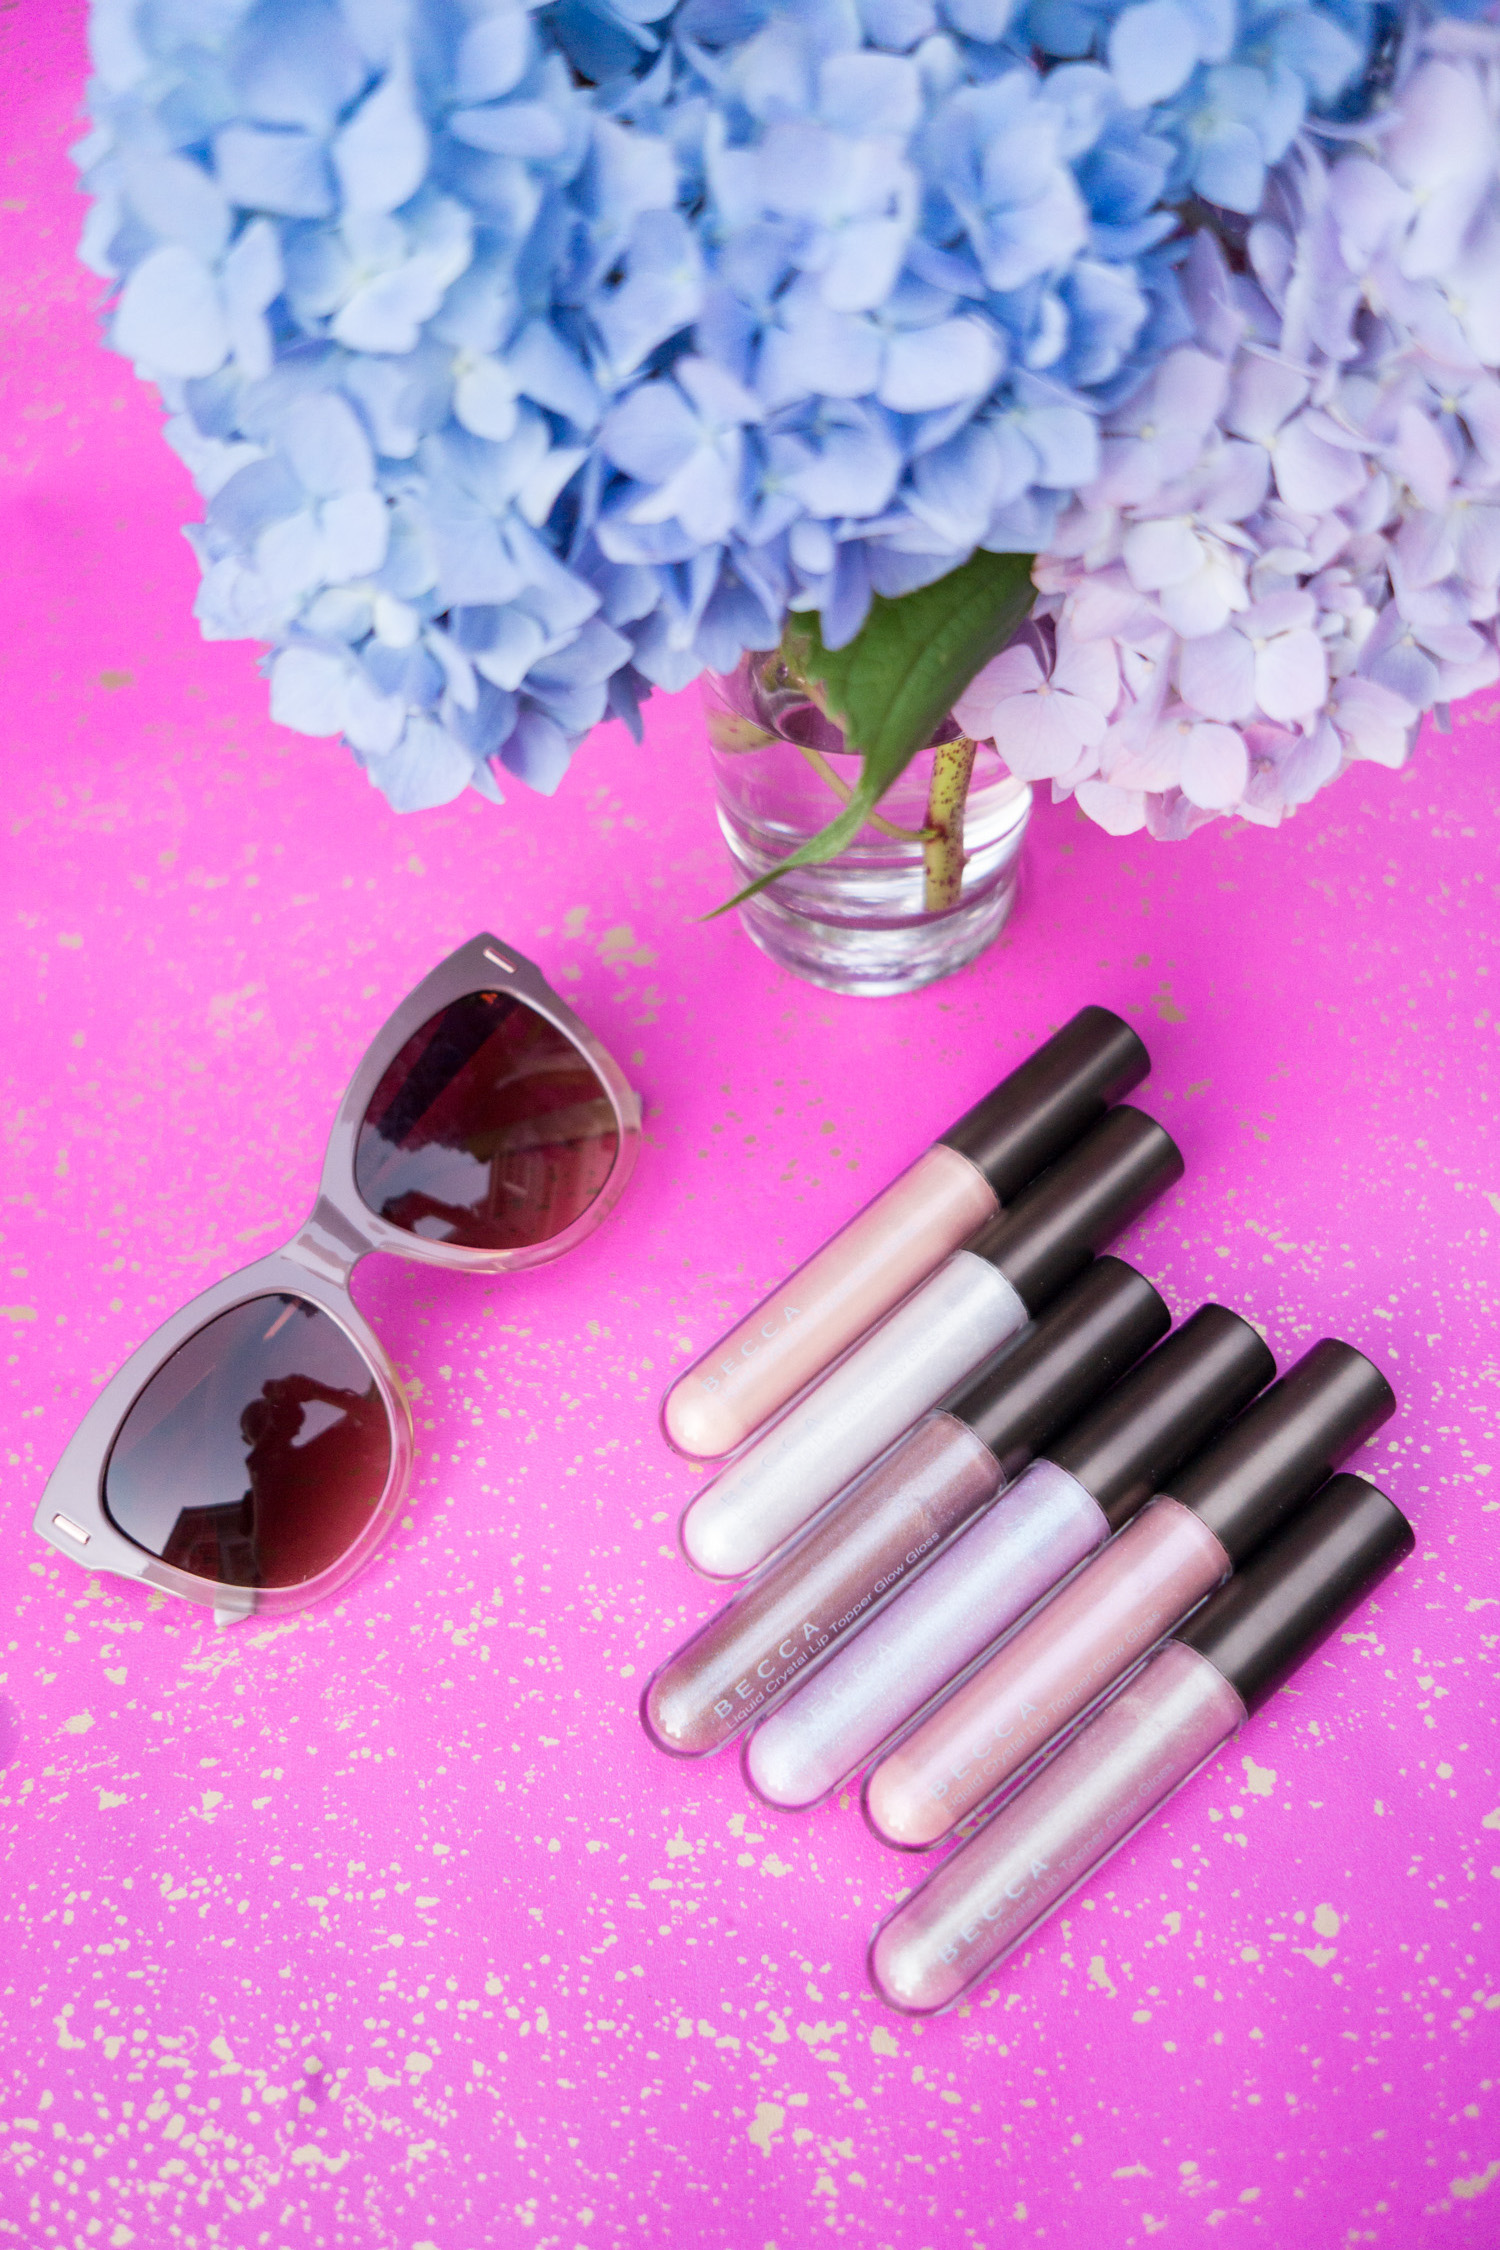 BECCA Liquid Crystal Lip Toppers - Review and Swatches